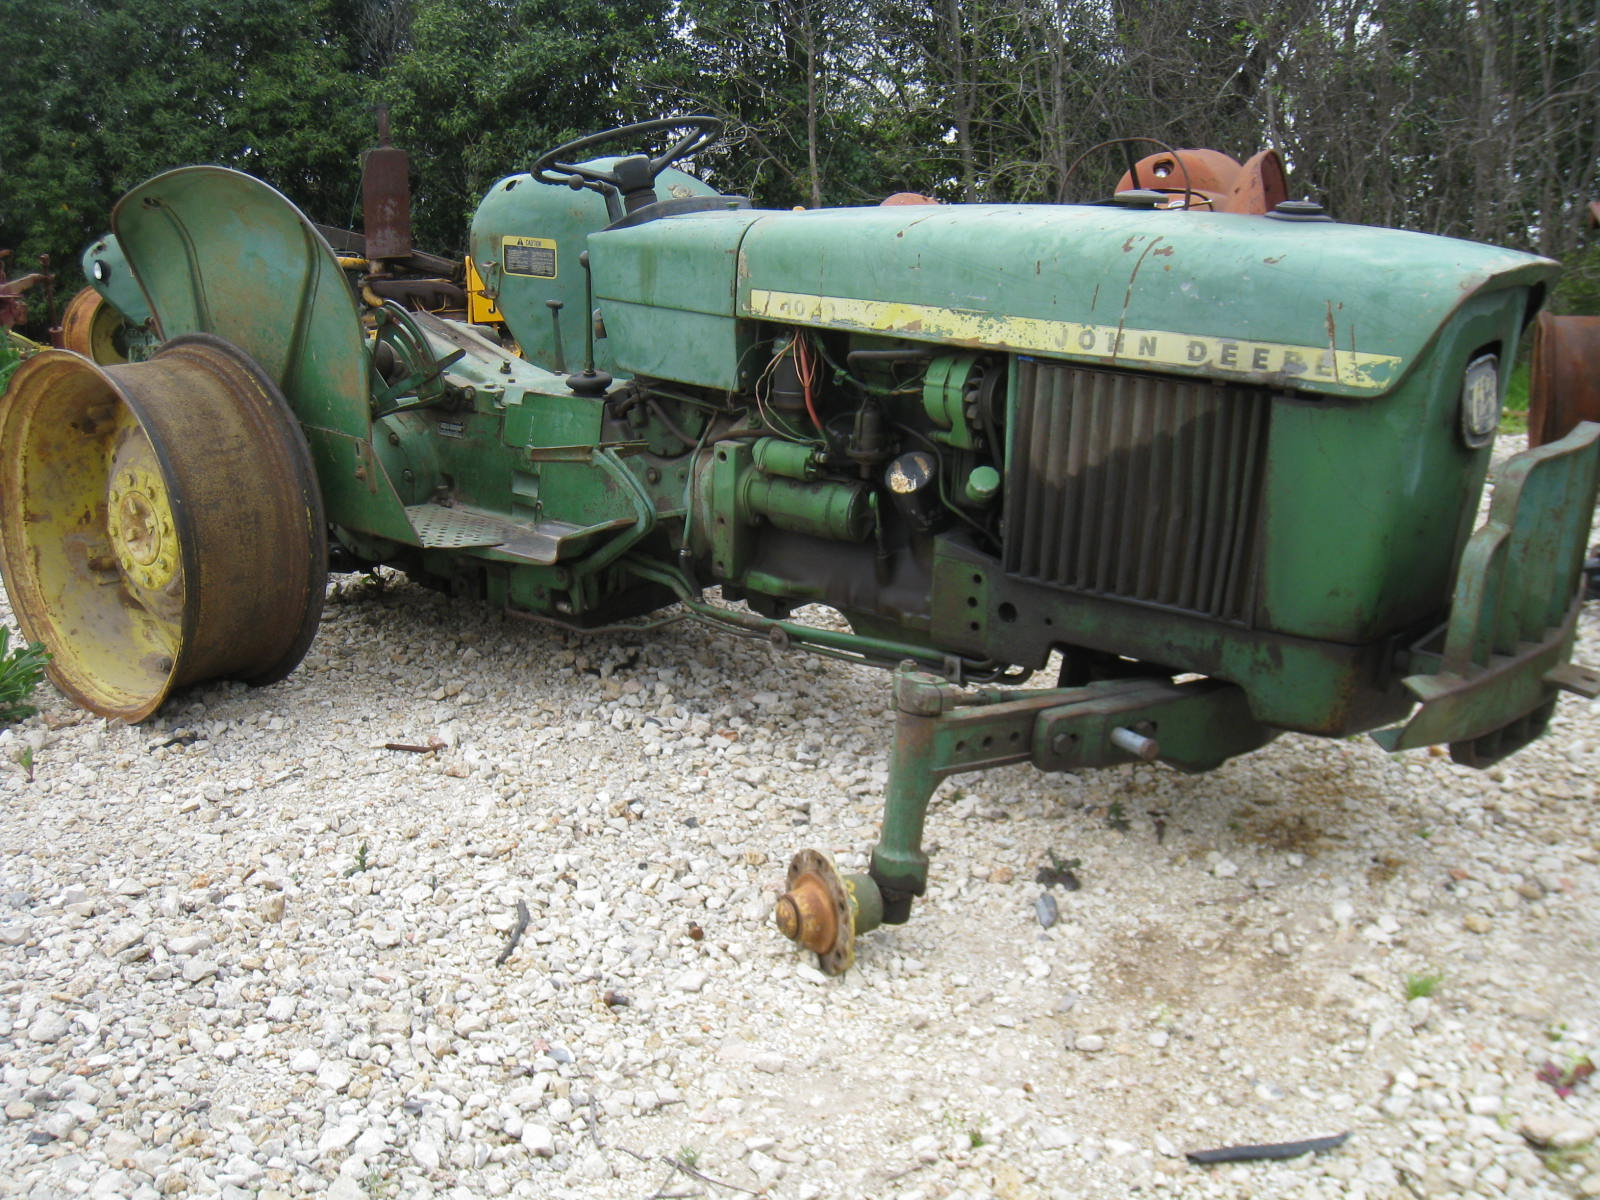 Used Tractor Parts Salvage Yards : Garden tractor salvage yards ftempo